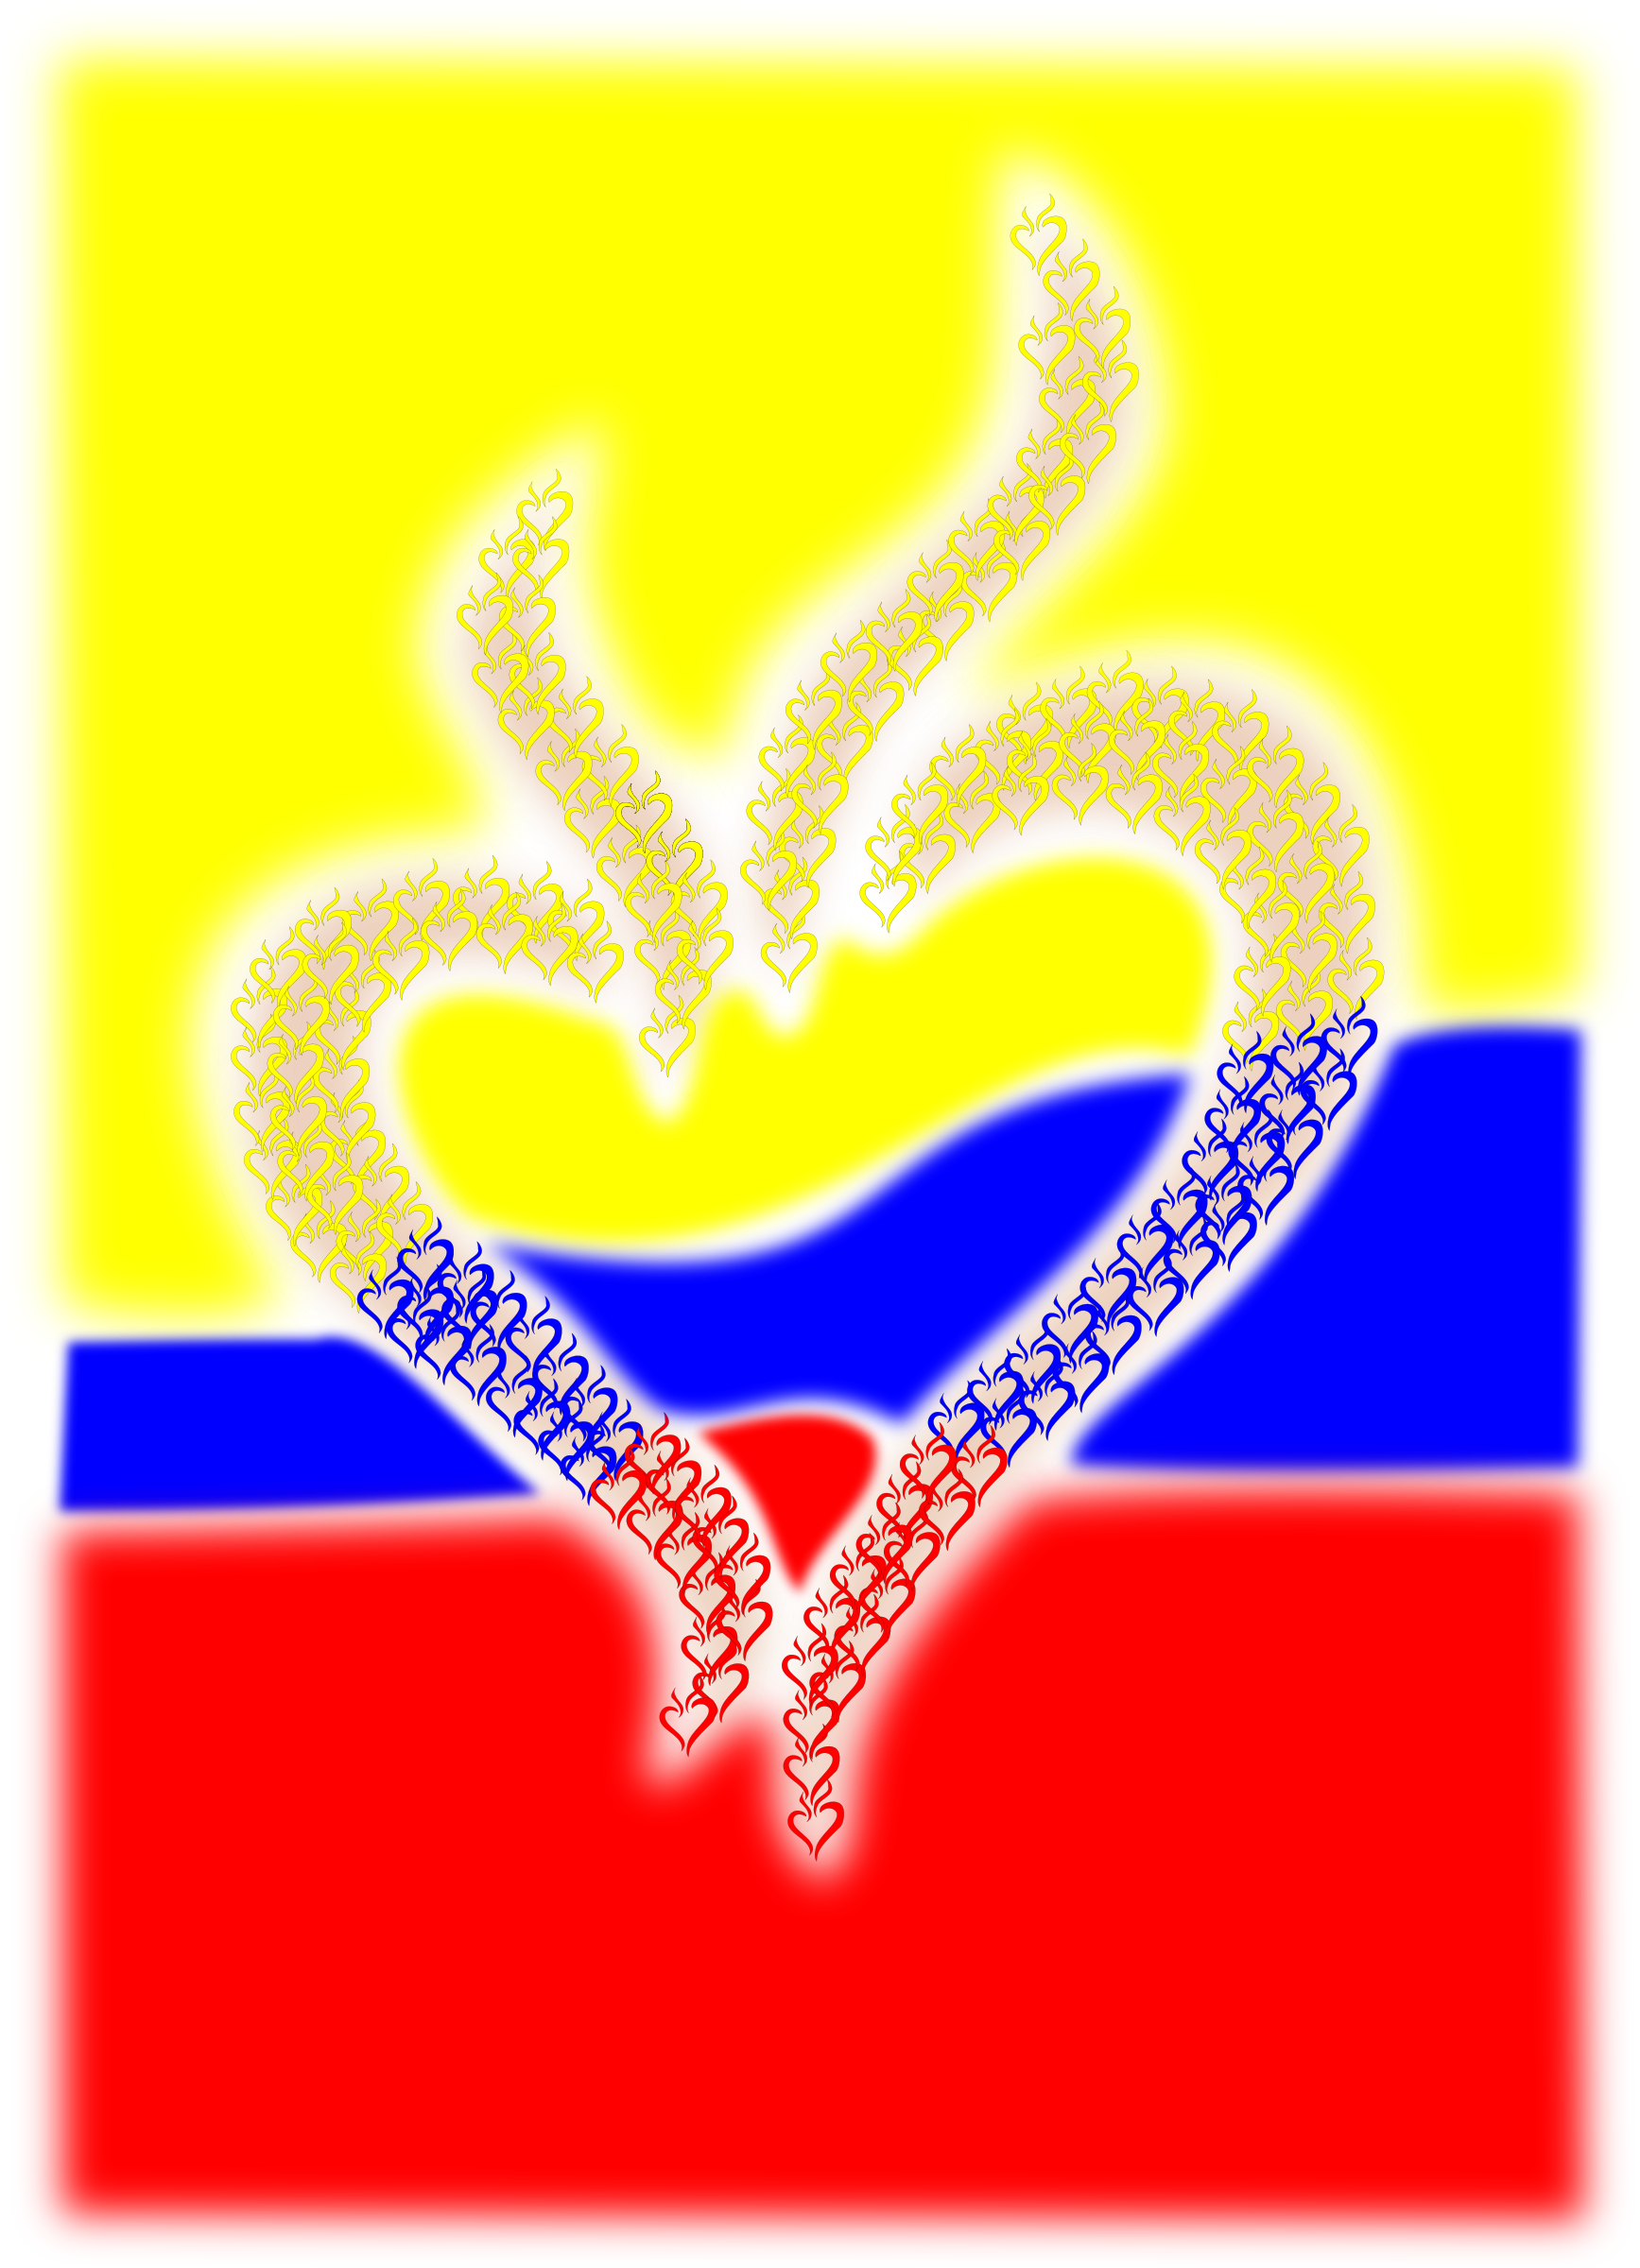 Colombia es pasion! by dpv101